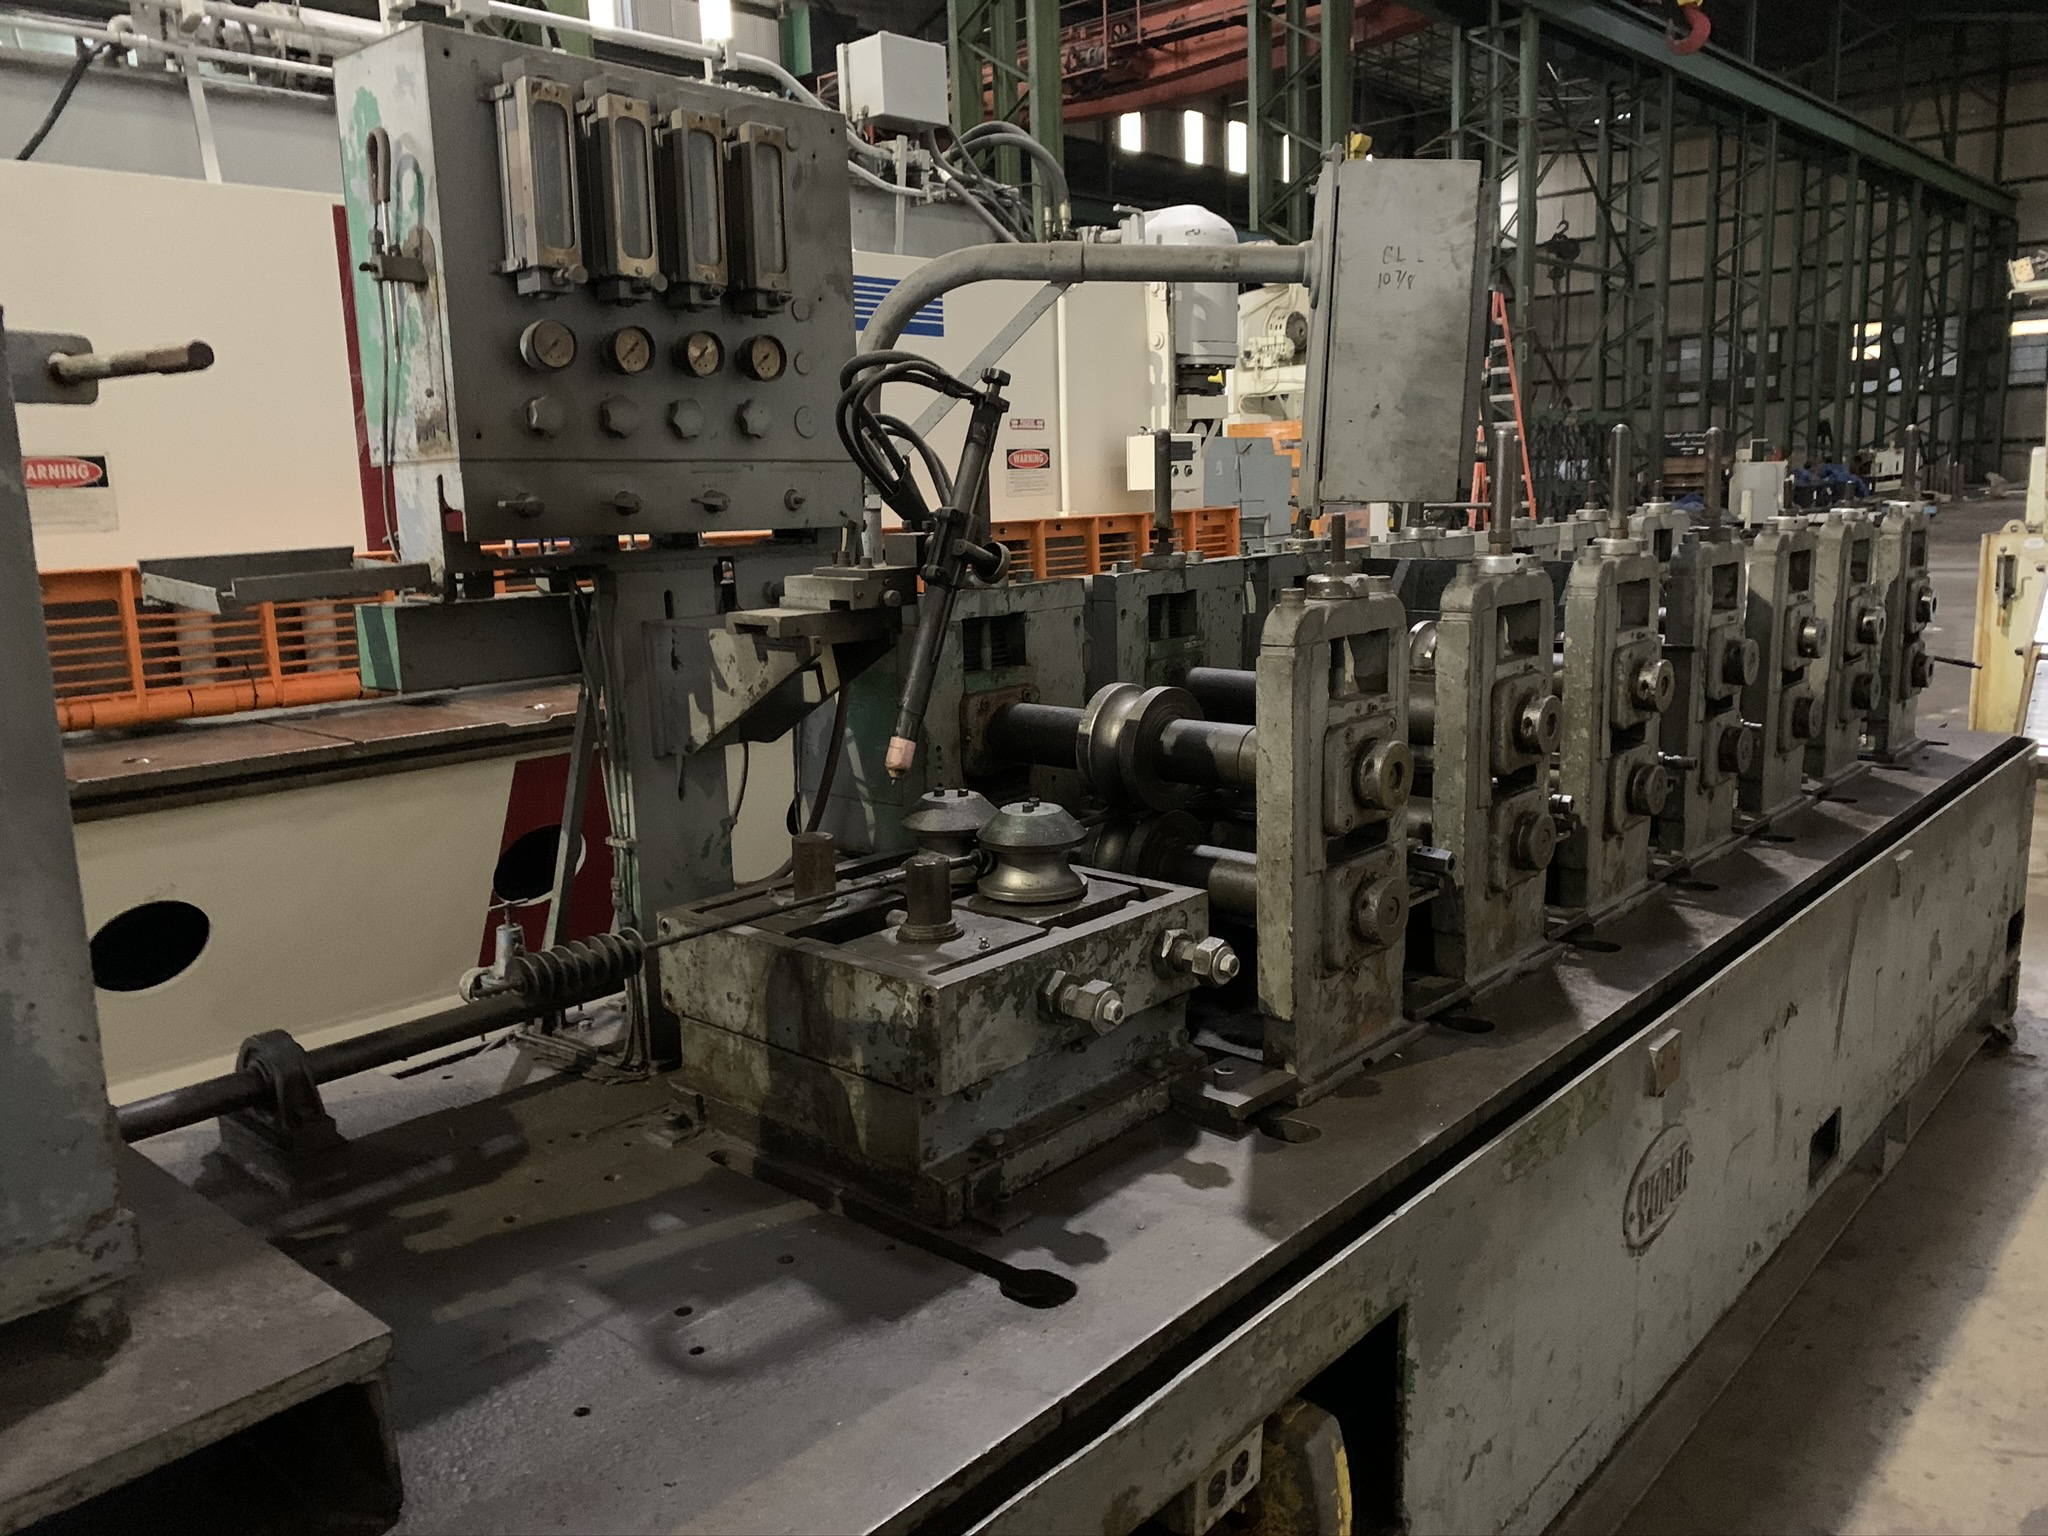 YODER MODEL M2.5 TUBE MILL; S/N C0-1424, 9-STAND 4-BREADKDOWN STANDS, (3) FINISHING STANDS, (2) - Image 3 of 8